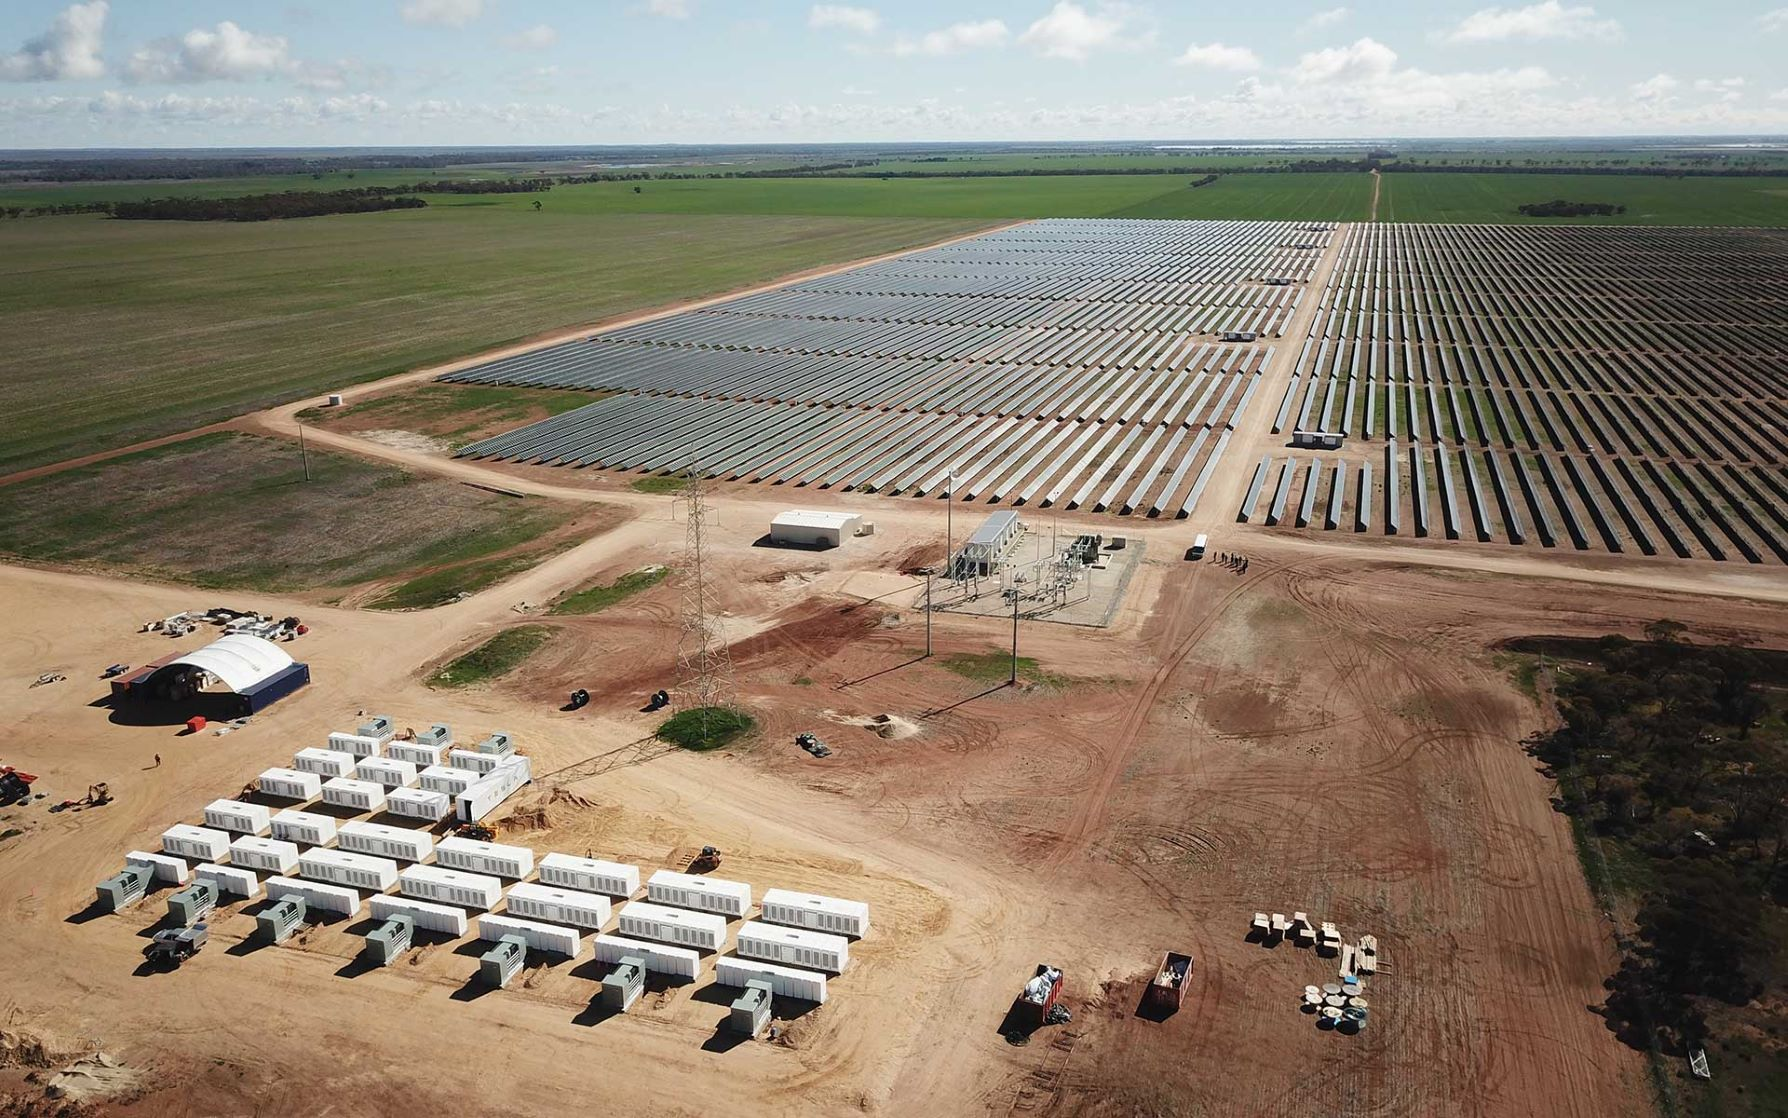 ARENA/Due to the technology's versatility and falling costs, the use of batteries for renewable energy is expected to increase over the coming years.